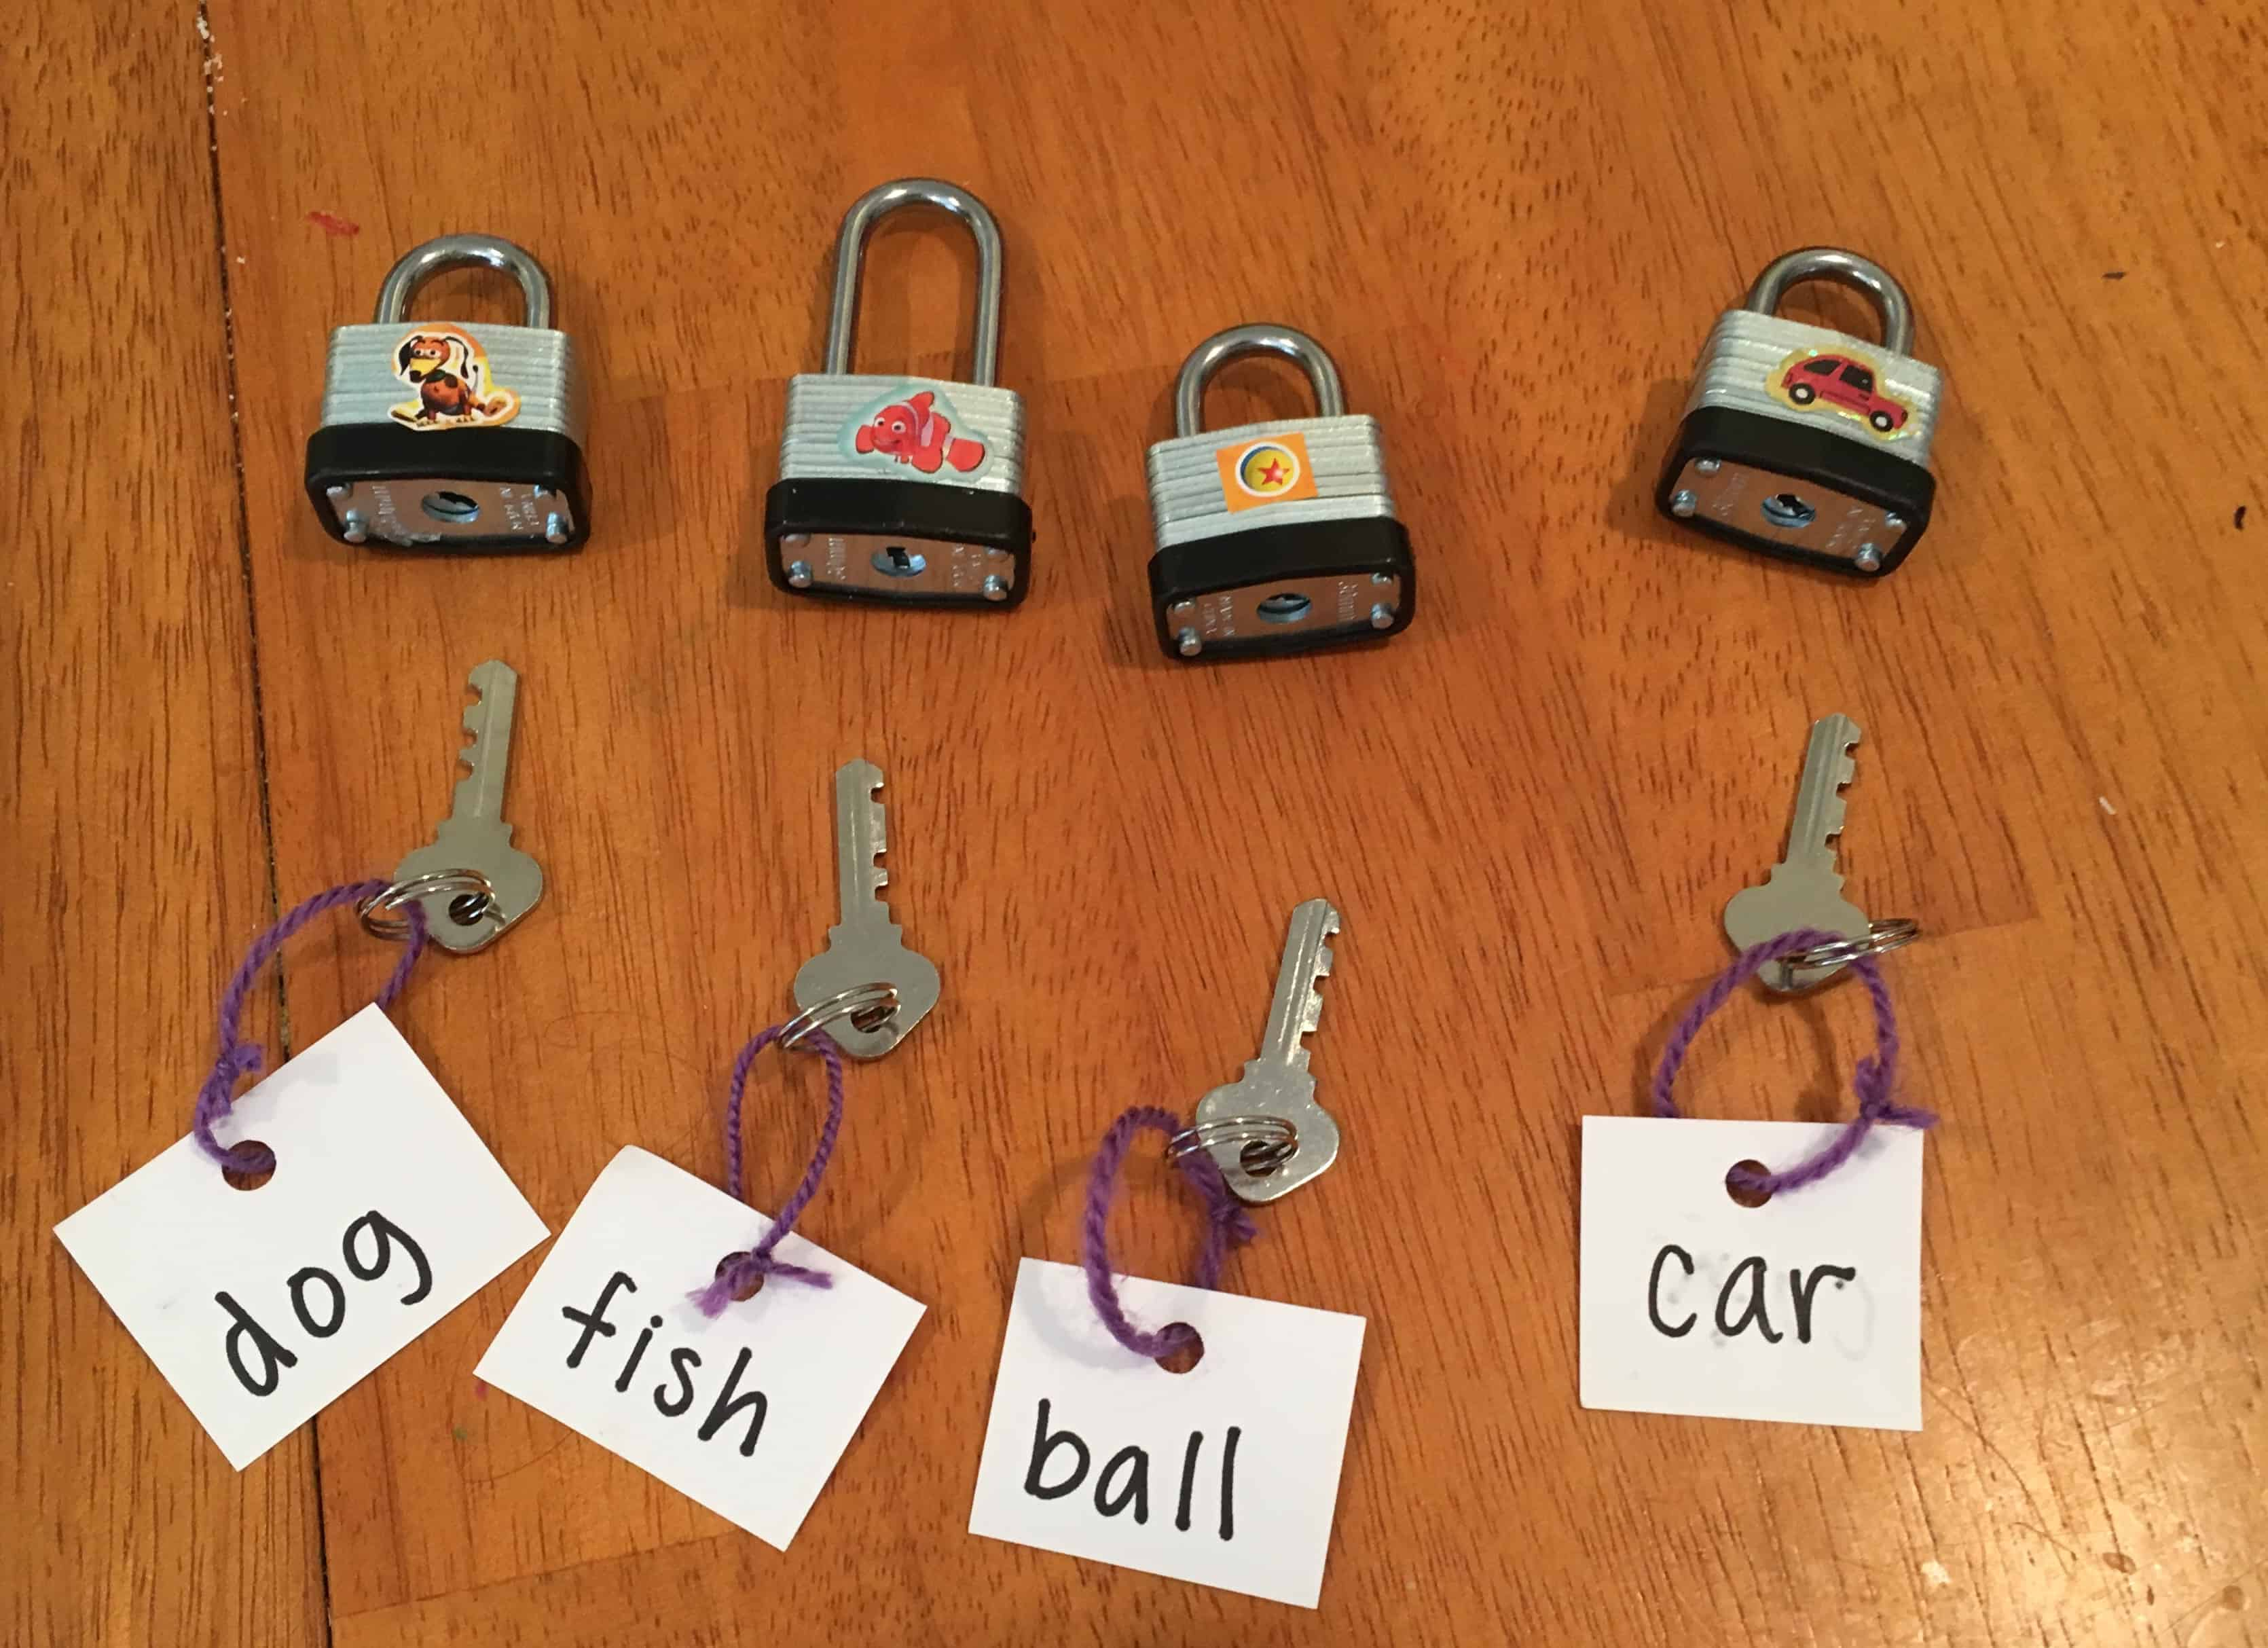 Simple Sight Word Game With Locks And Keys Views From A Step Stool Combination Lock This Uses Padlocks To Make Learning Read Fun